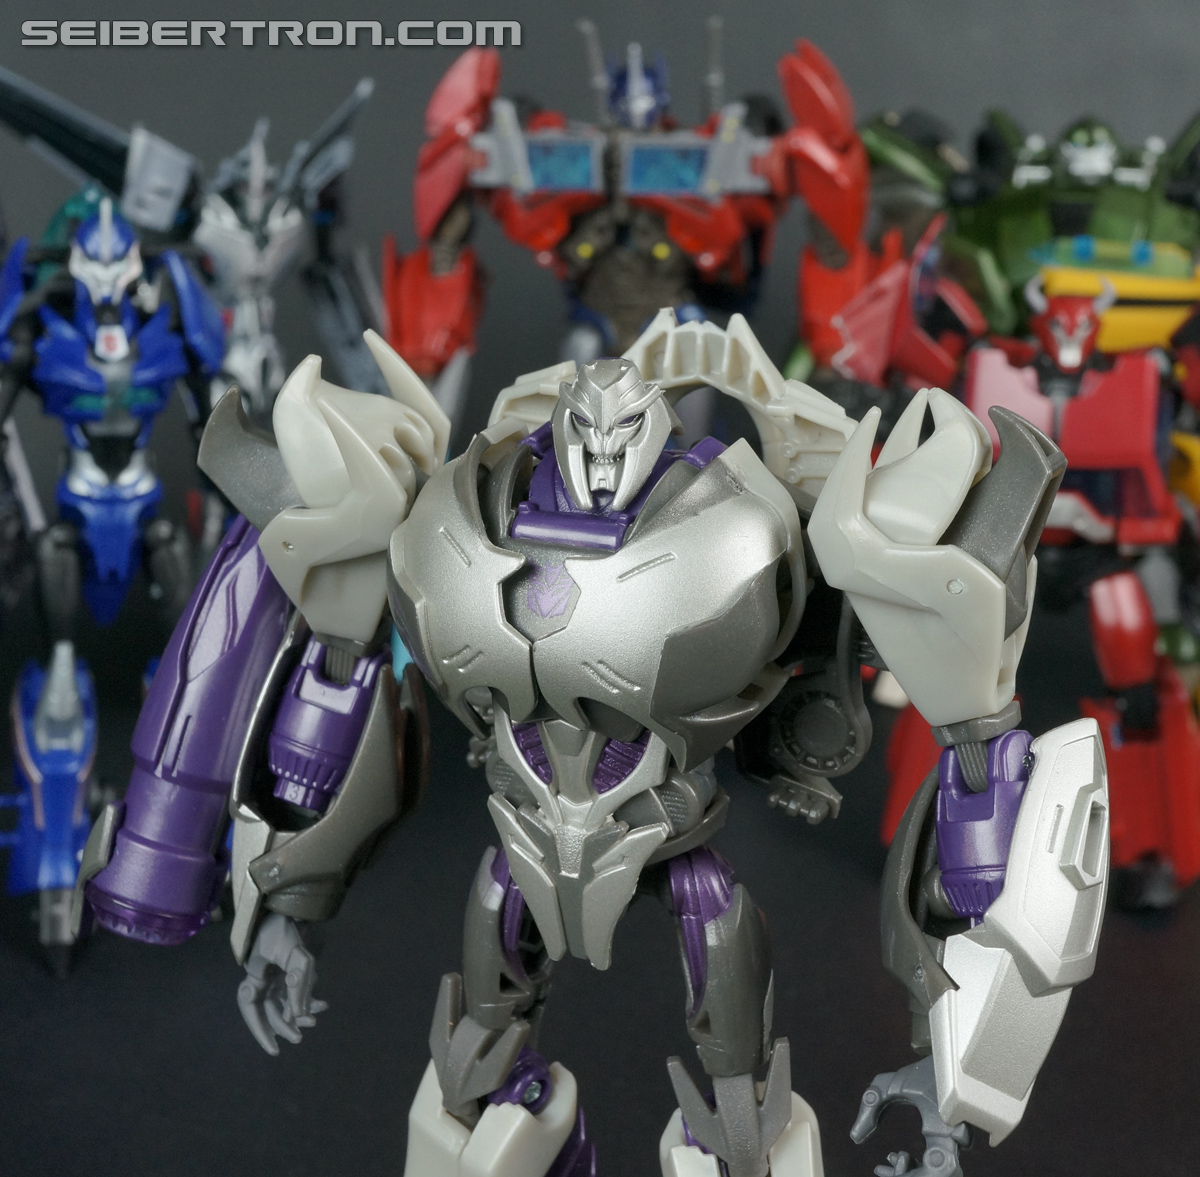 Transformers First Edition Megatron (Image #161 of 165)